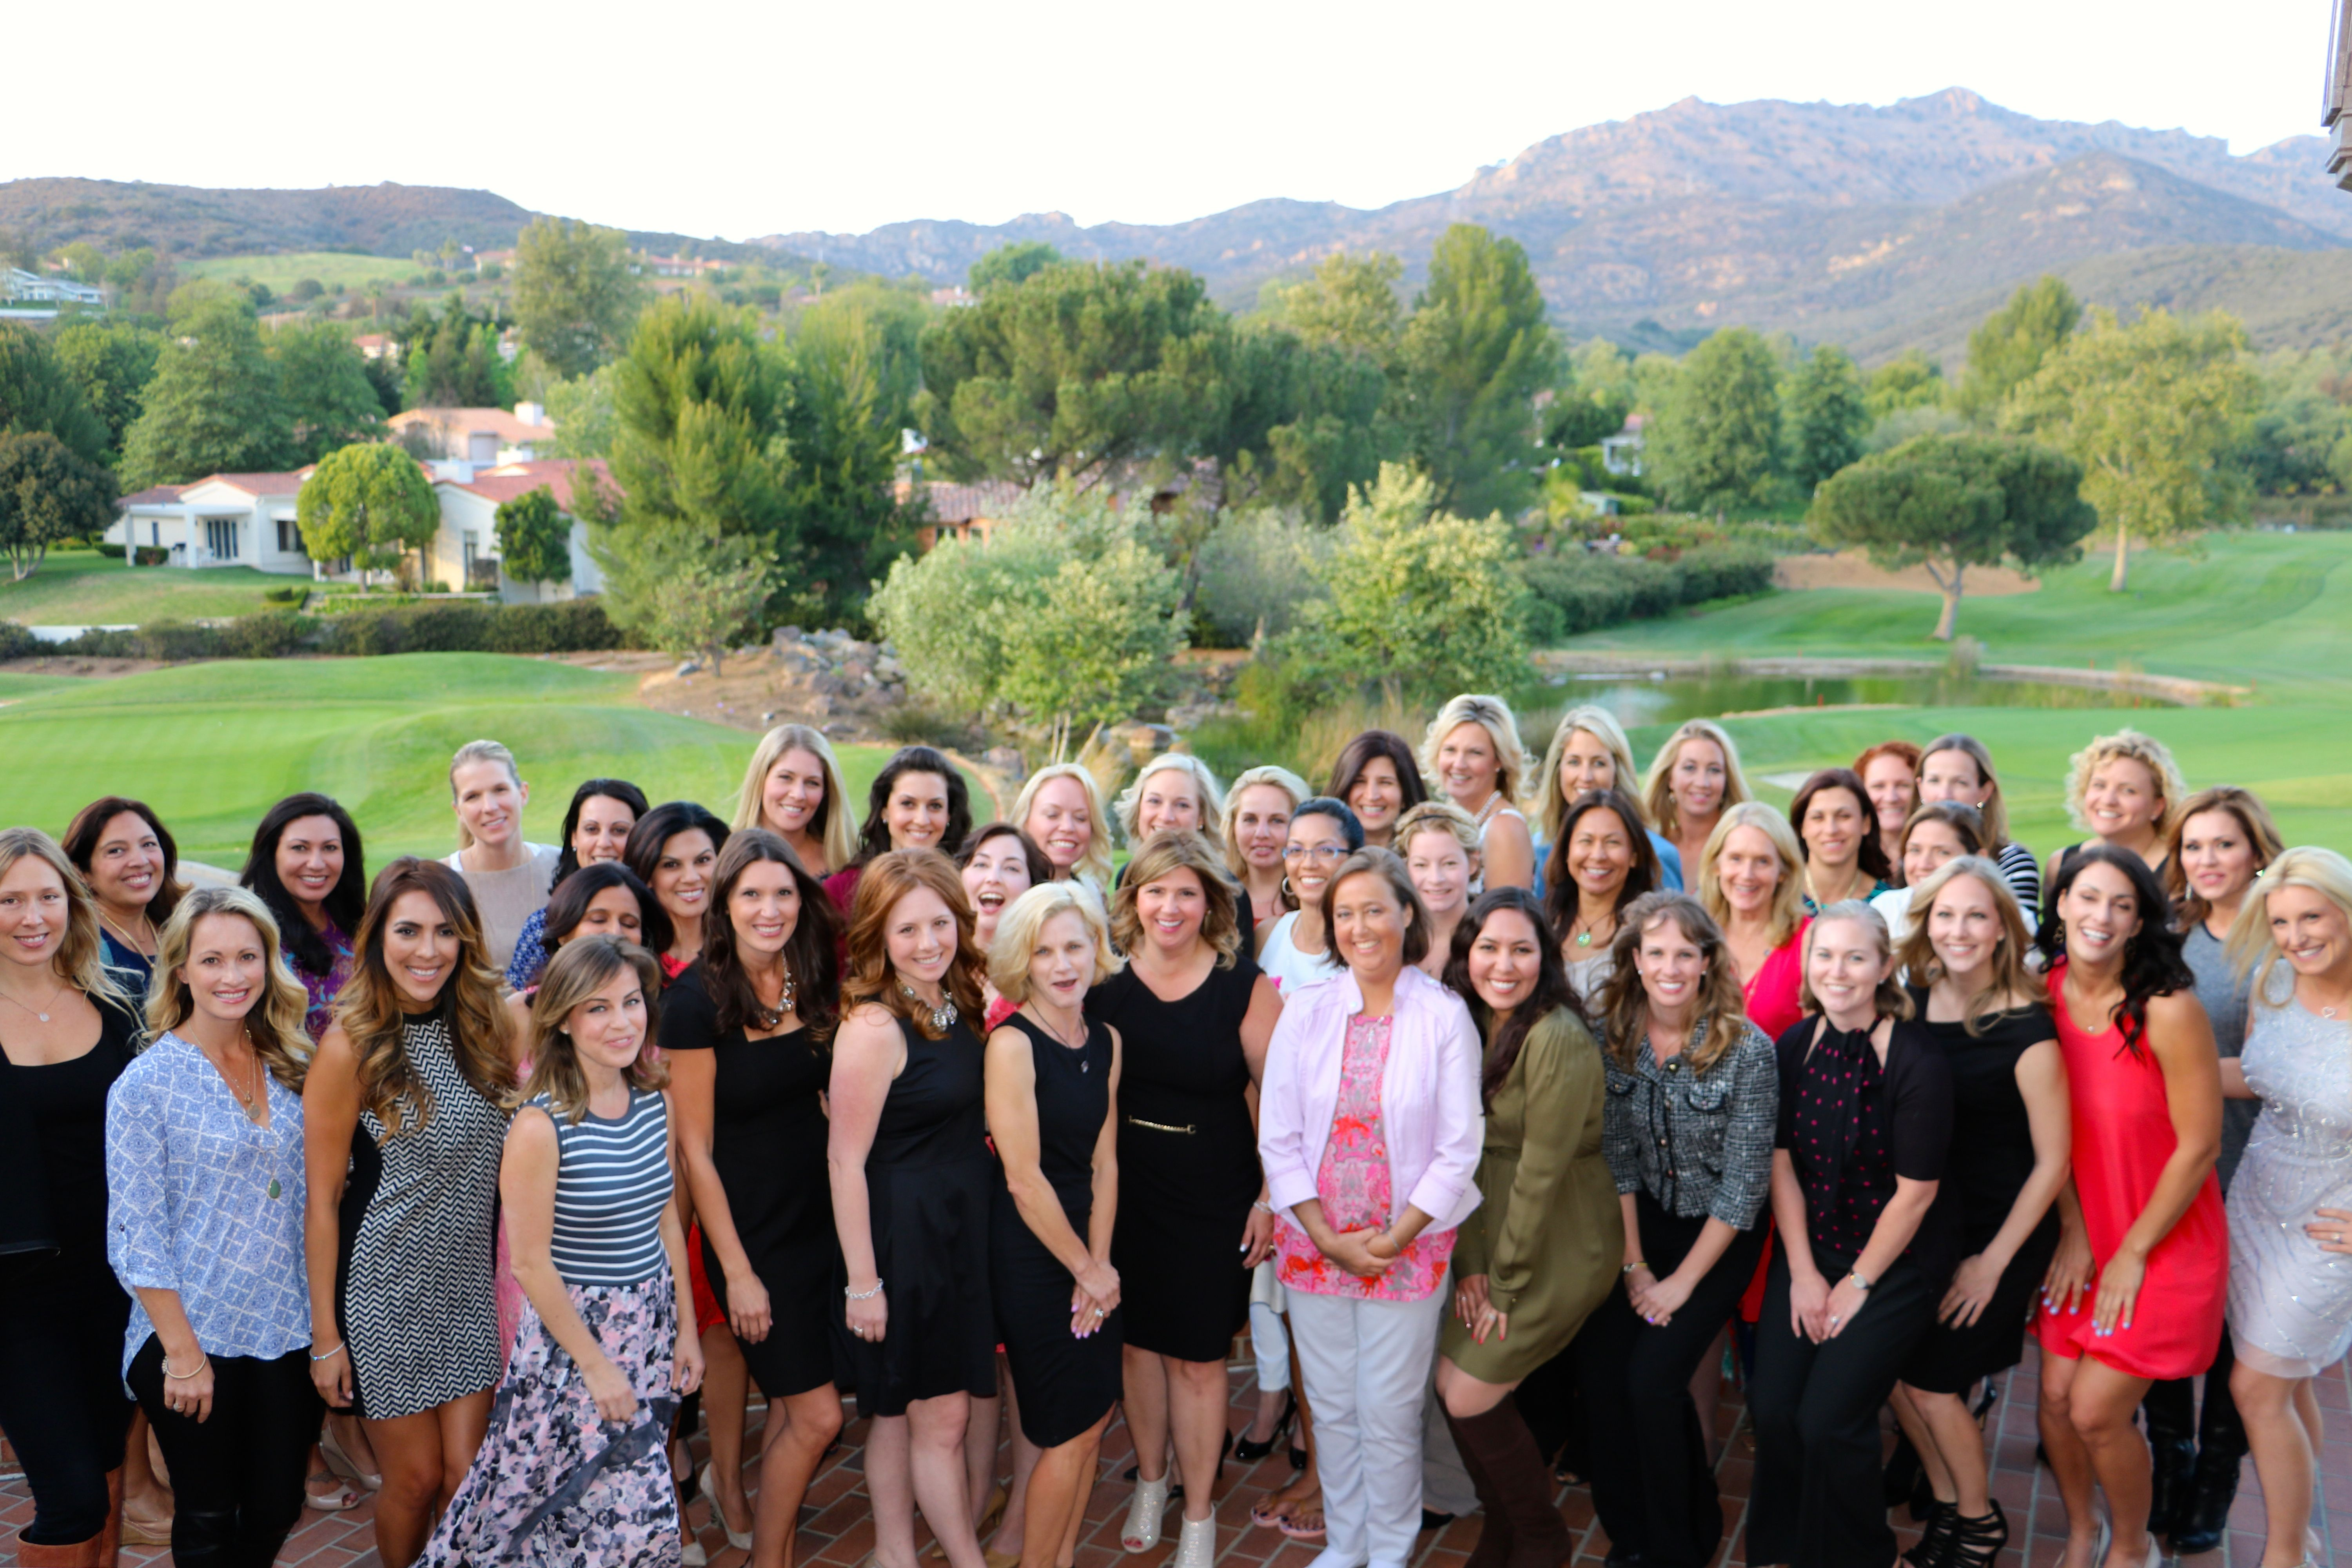 christian single women in westlake village Faith focused dating and relationships browse profiles & photos of california westlake village catholic women and join catholicmatchcom, the clear leader in online dating for catholics with more catholic singles than any other catholic dating site.